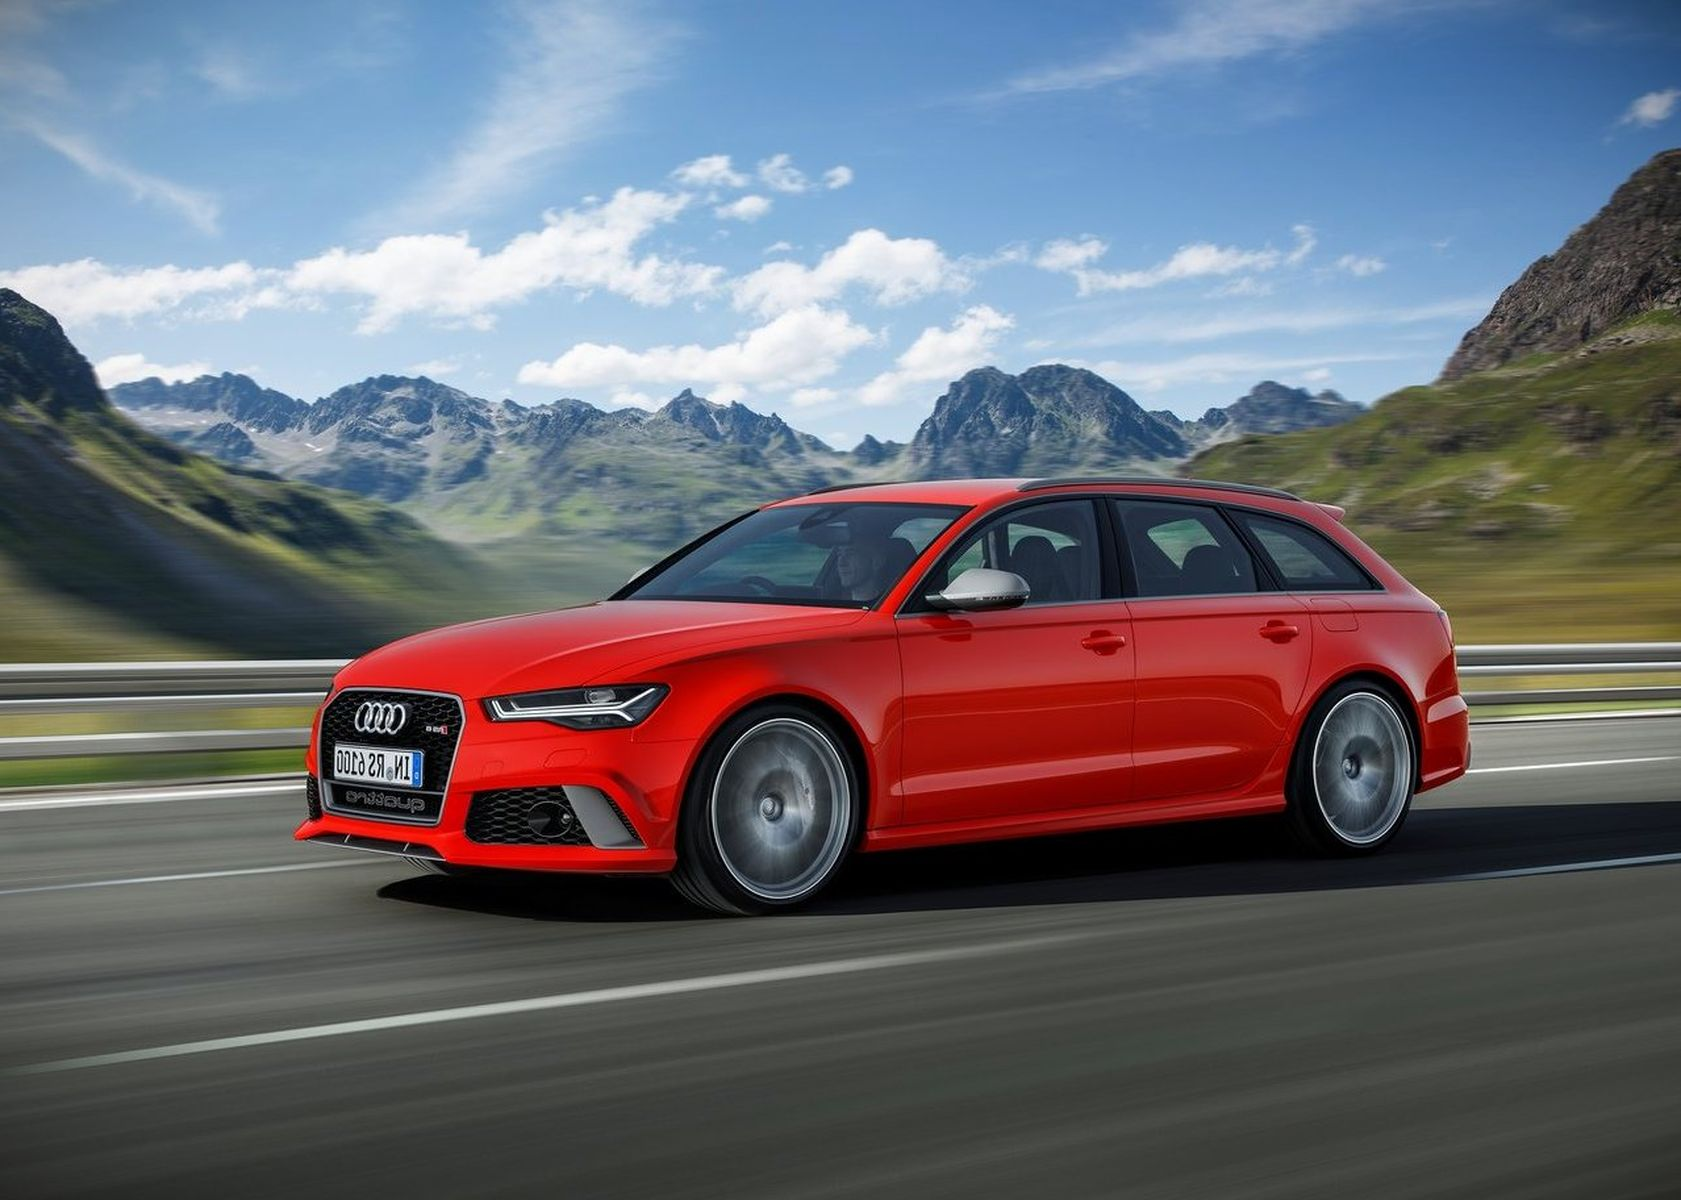 2018 Audi Rs6 Wallpaper Hd For Iphone New Suv Price